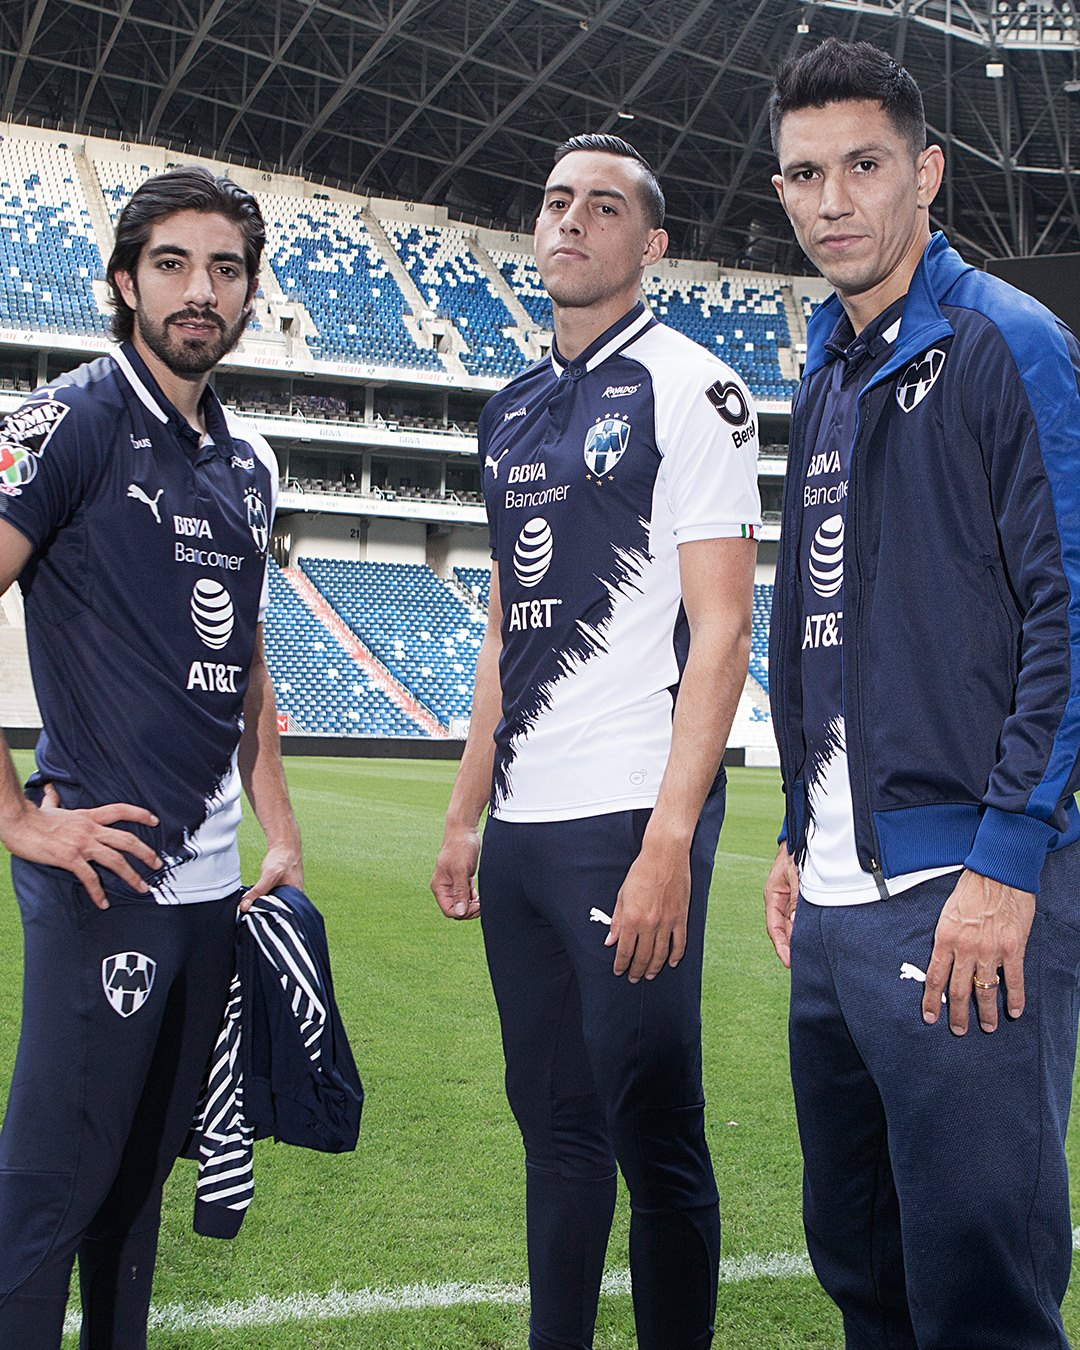 68ed30329 ... Click to enlarge image cf monterrey 2019 puma third kit d.jpg ...